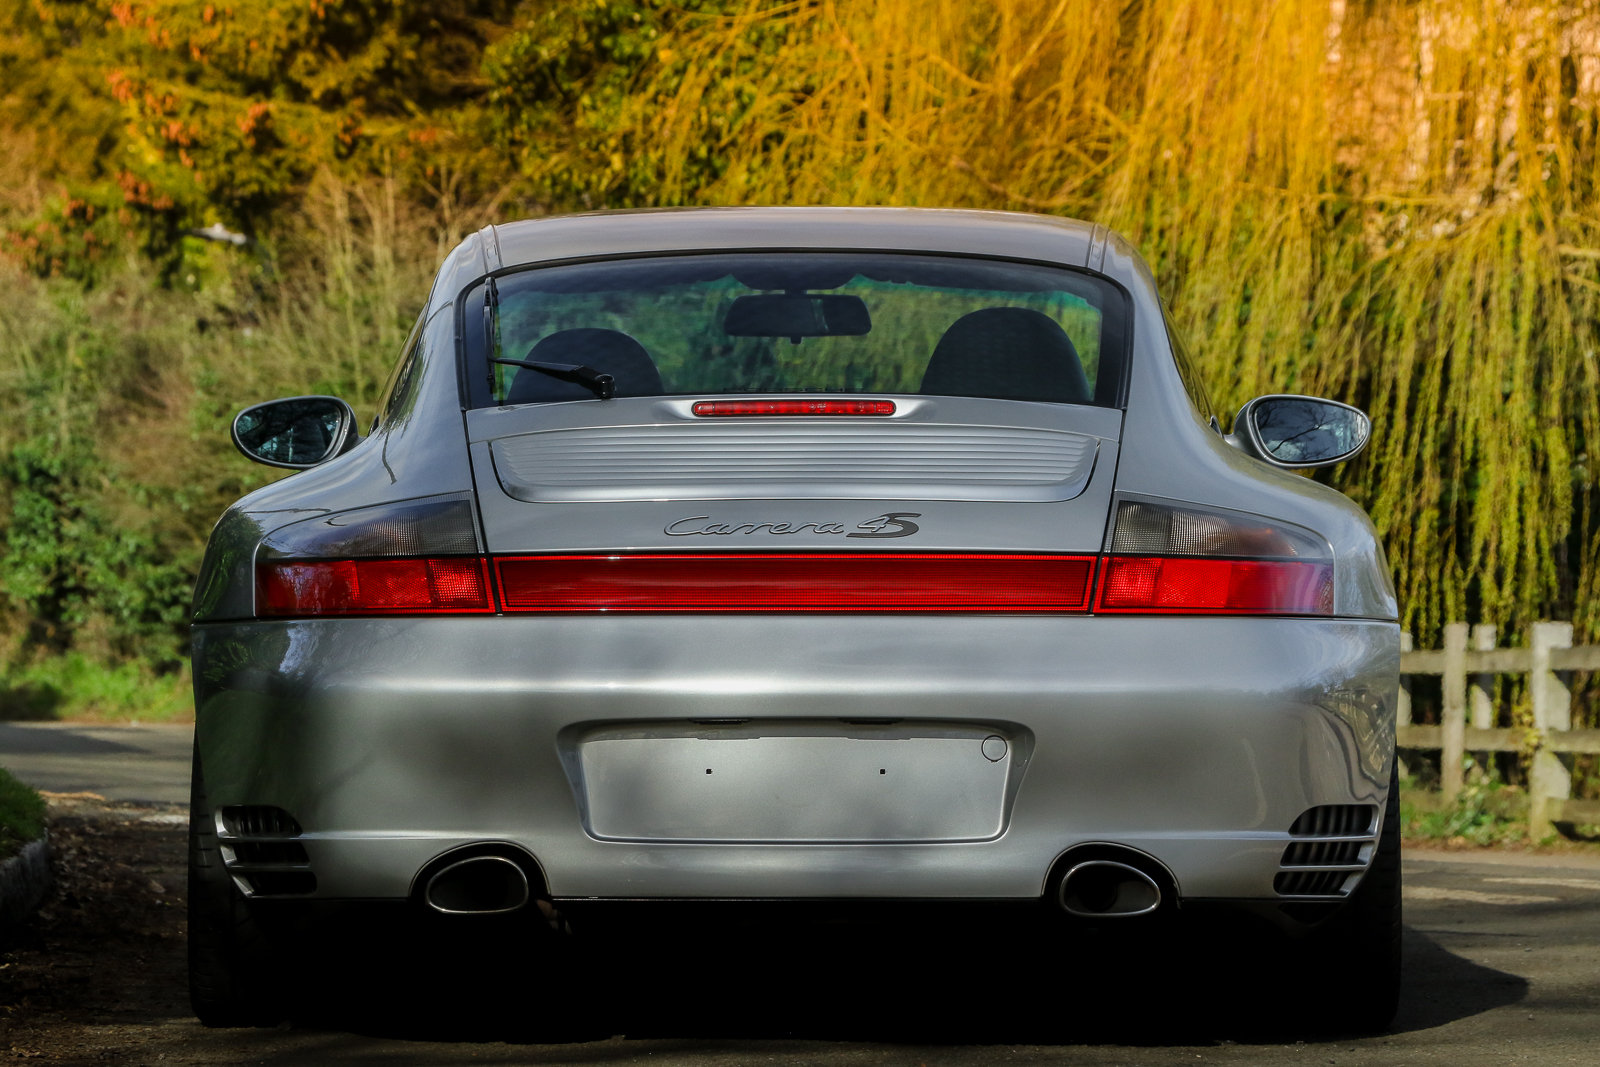 2002 Porsche 911 Carrera 4S 6-Speed Manual 996 FSH For Sale (picture 3 of 6)